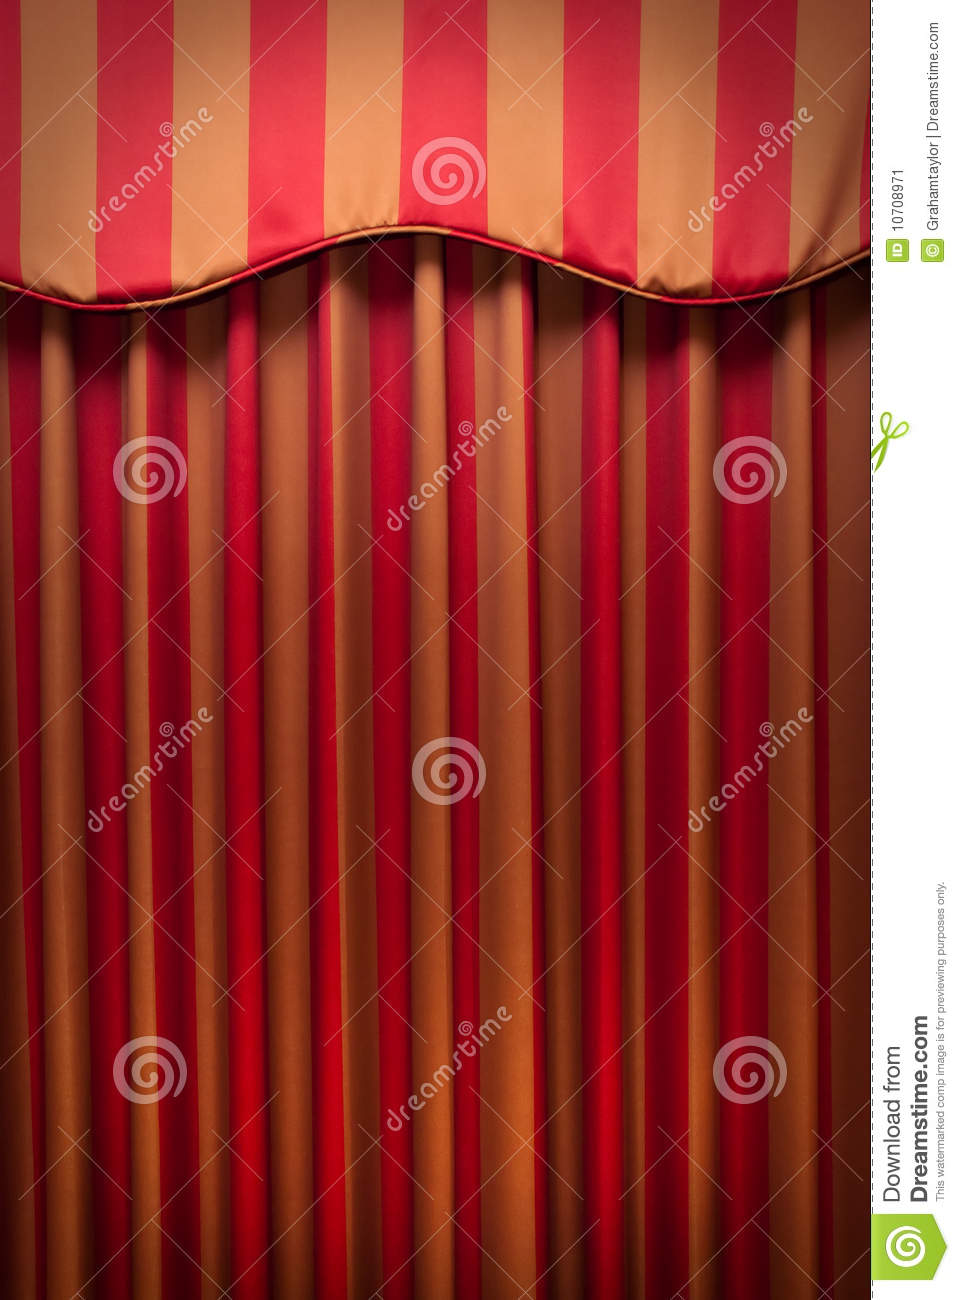 Striped Red And Gold Curtains Stock Image Image Of